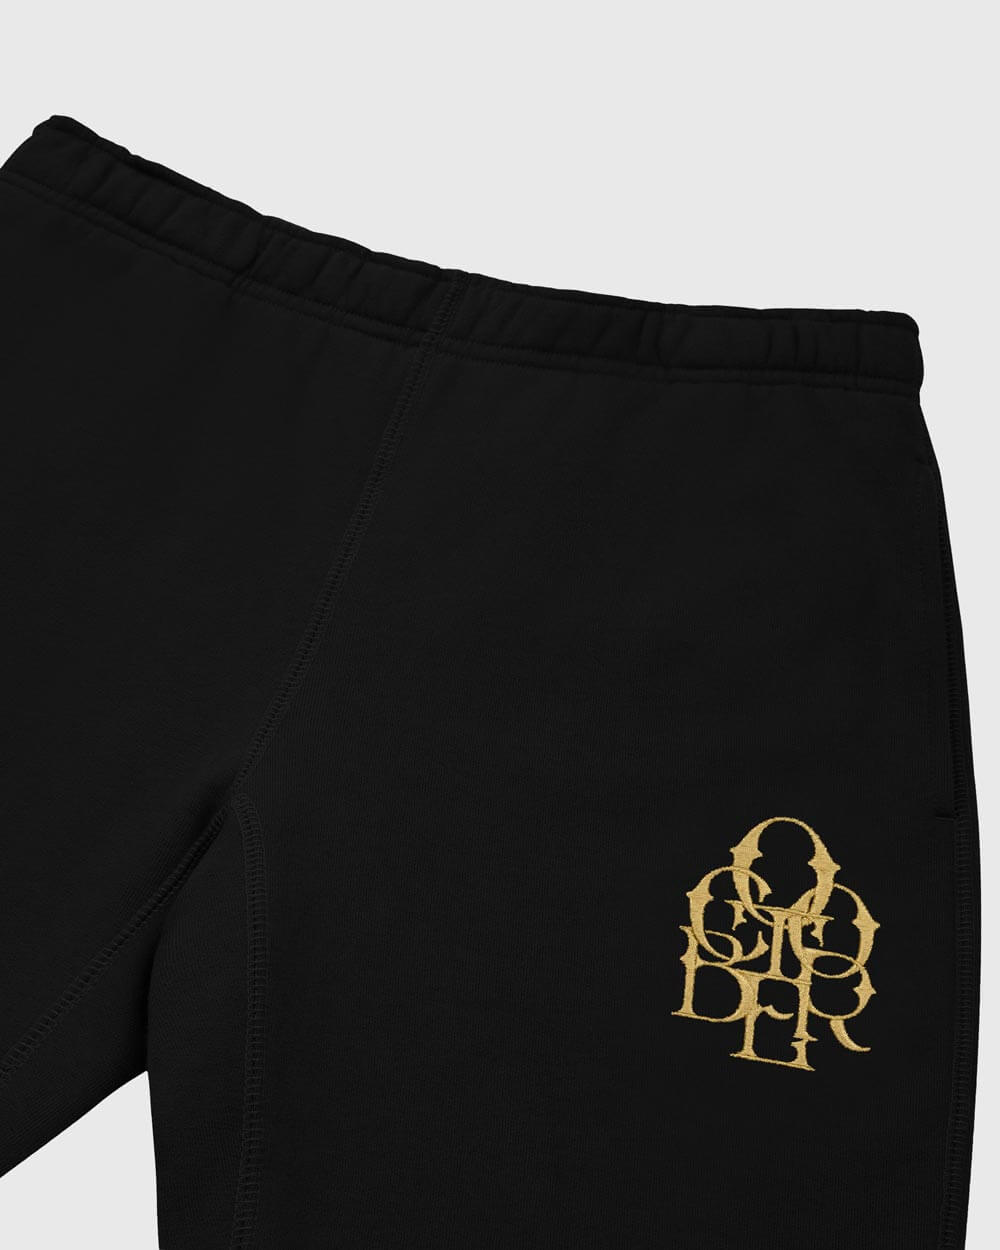 OCTOBER LETTERLOCK SWEATPANT - BLACK